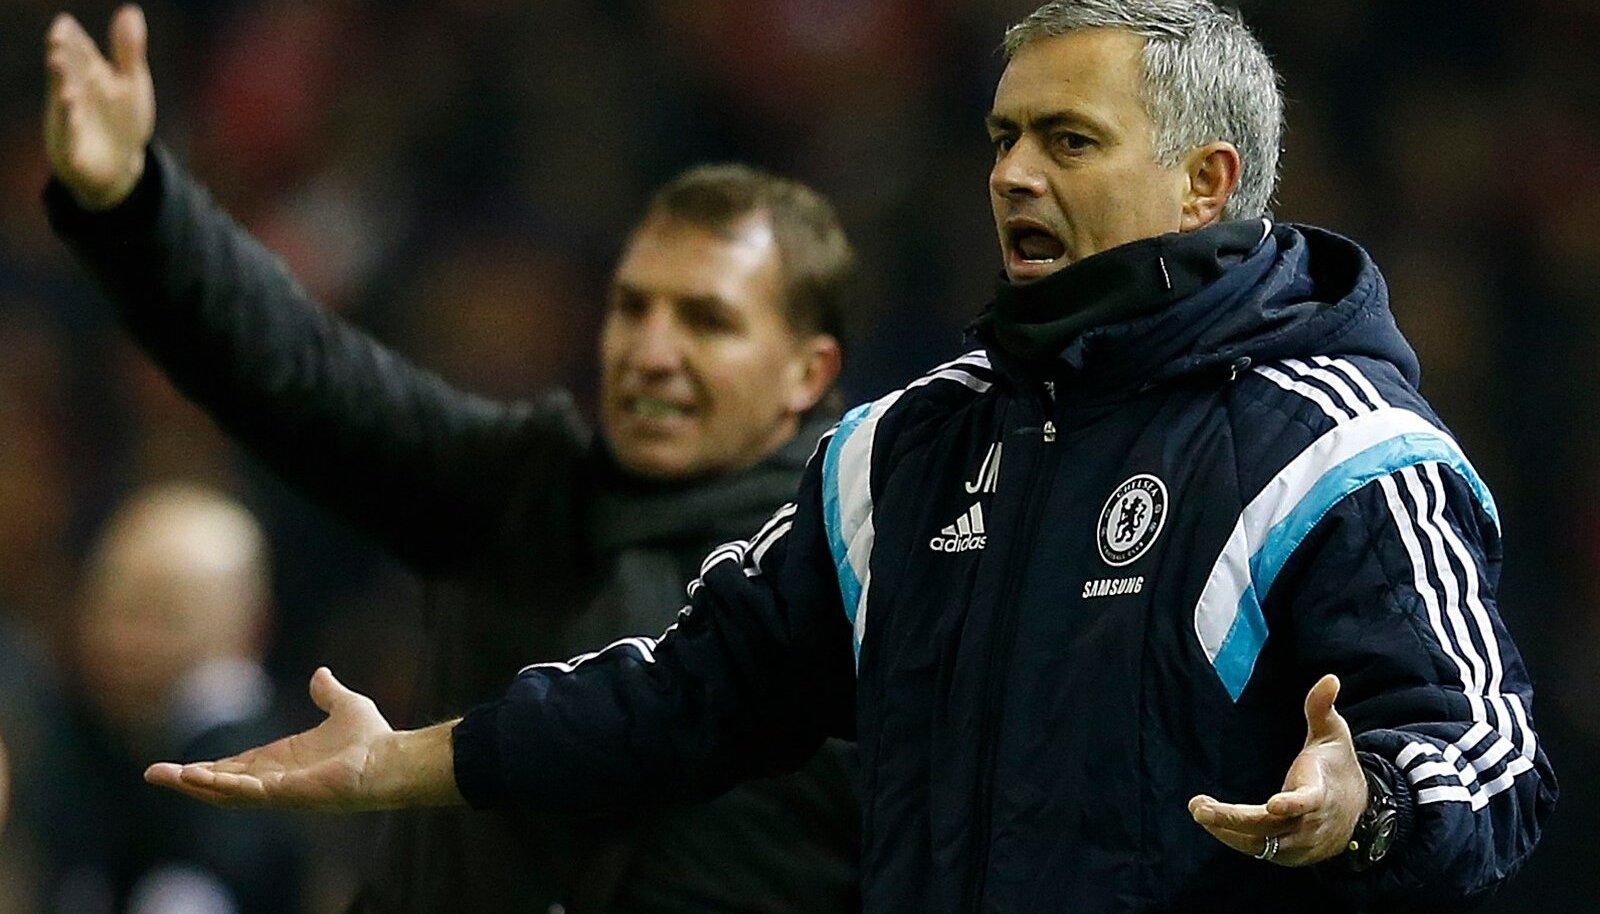 Chelsea's manager Mourinho reacts during their English League Cup semi-final first leg soccer match against Liverpool at Anfield in Liverpool